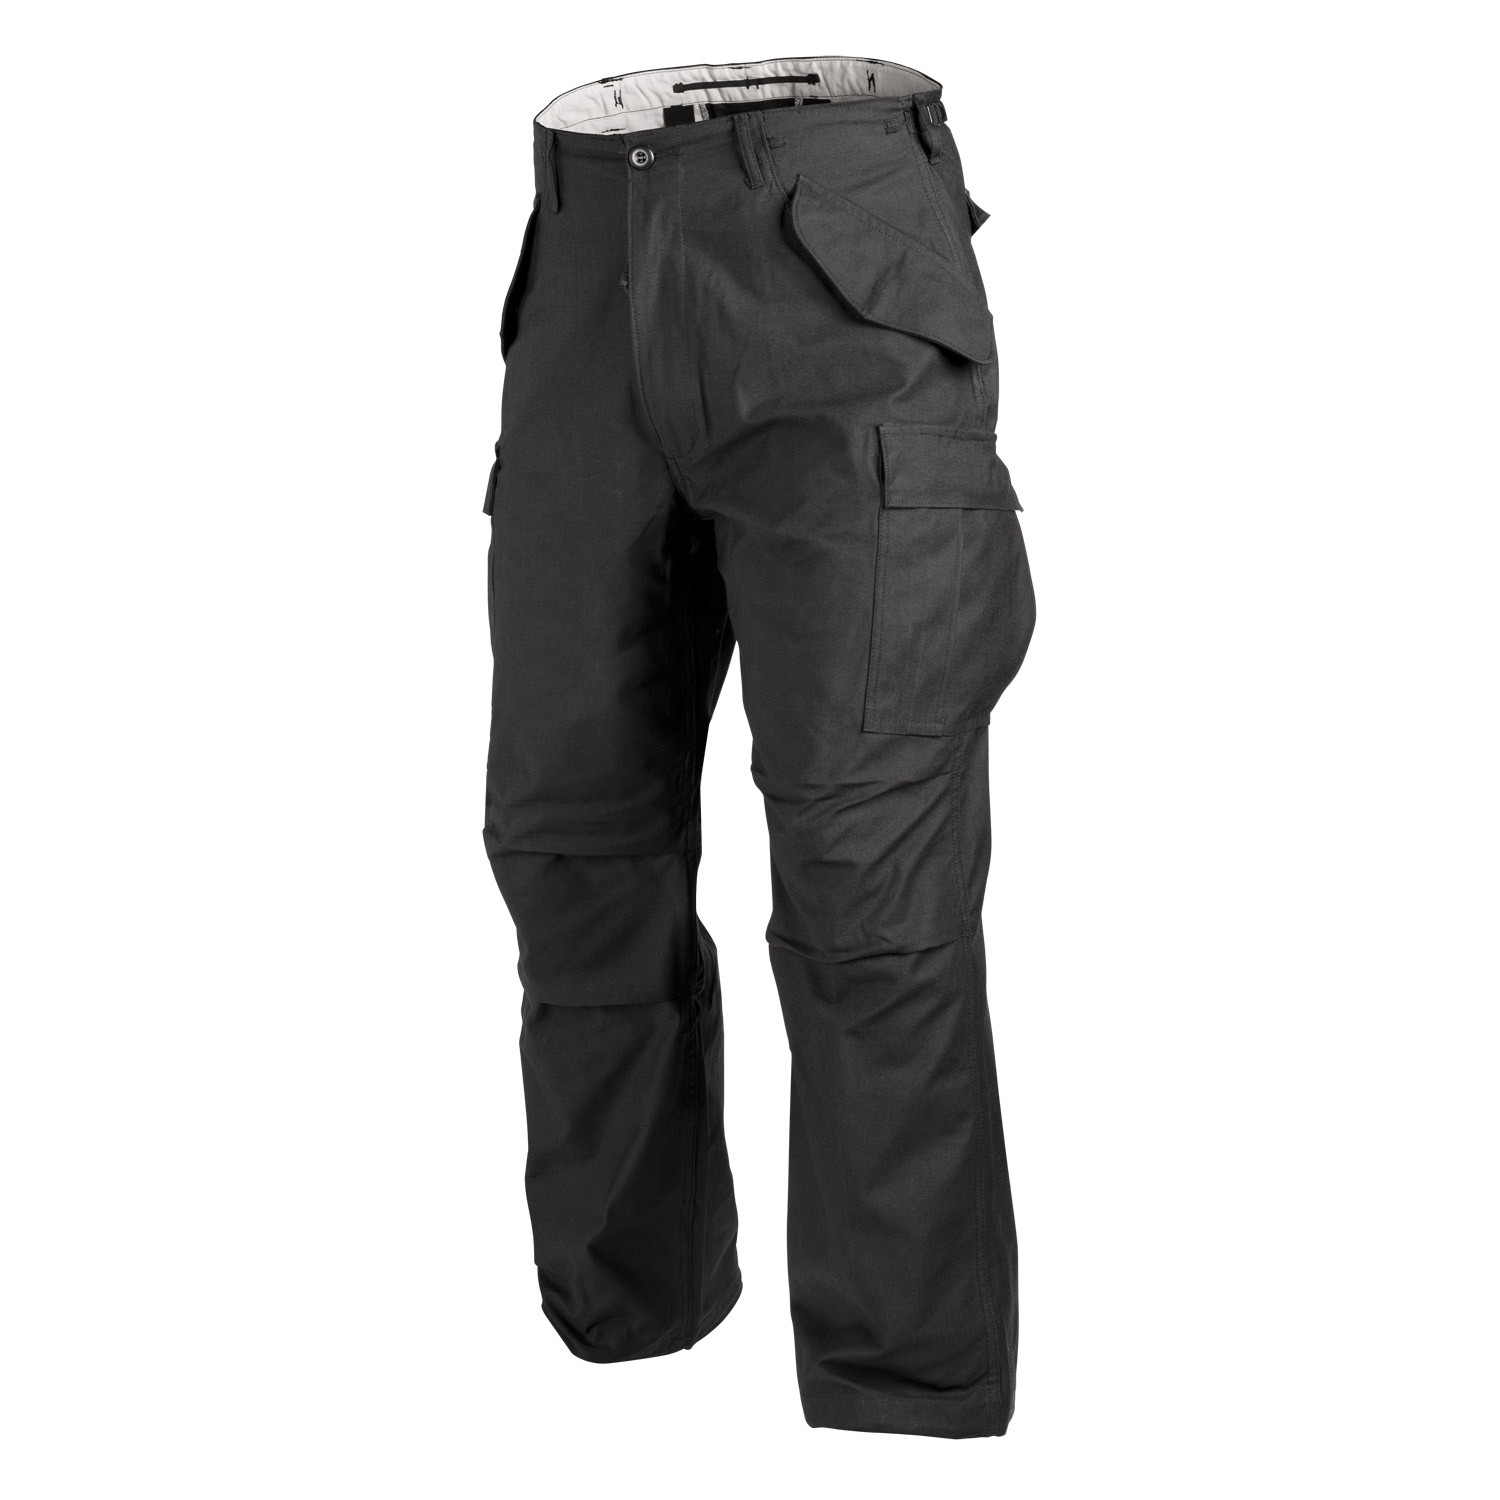 M65 Trousers - Nyco Sateen Detail 2